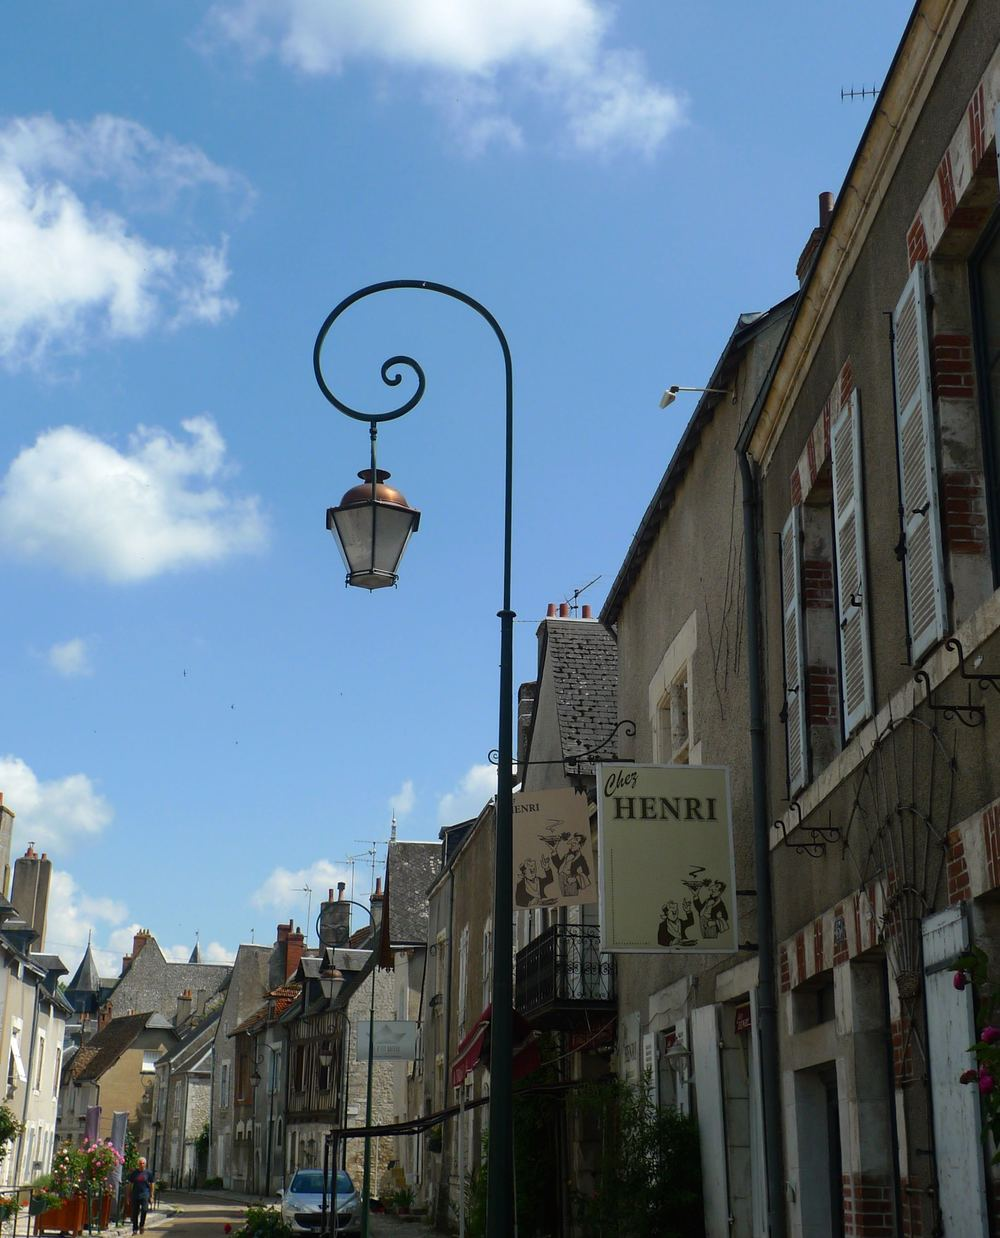 A lamp post with a curl